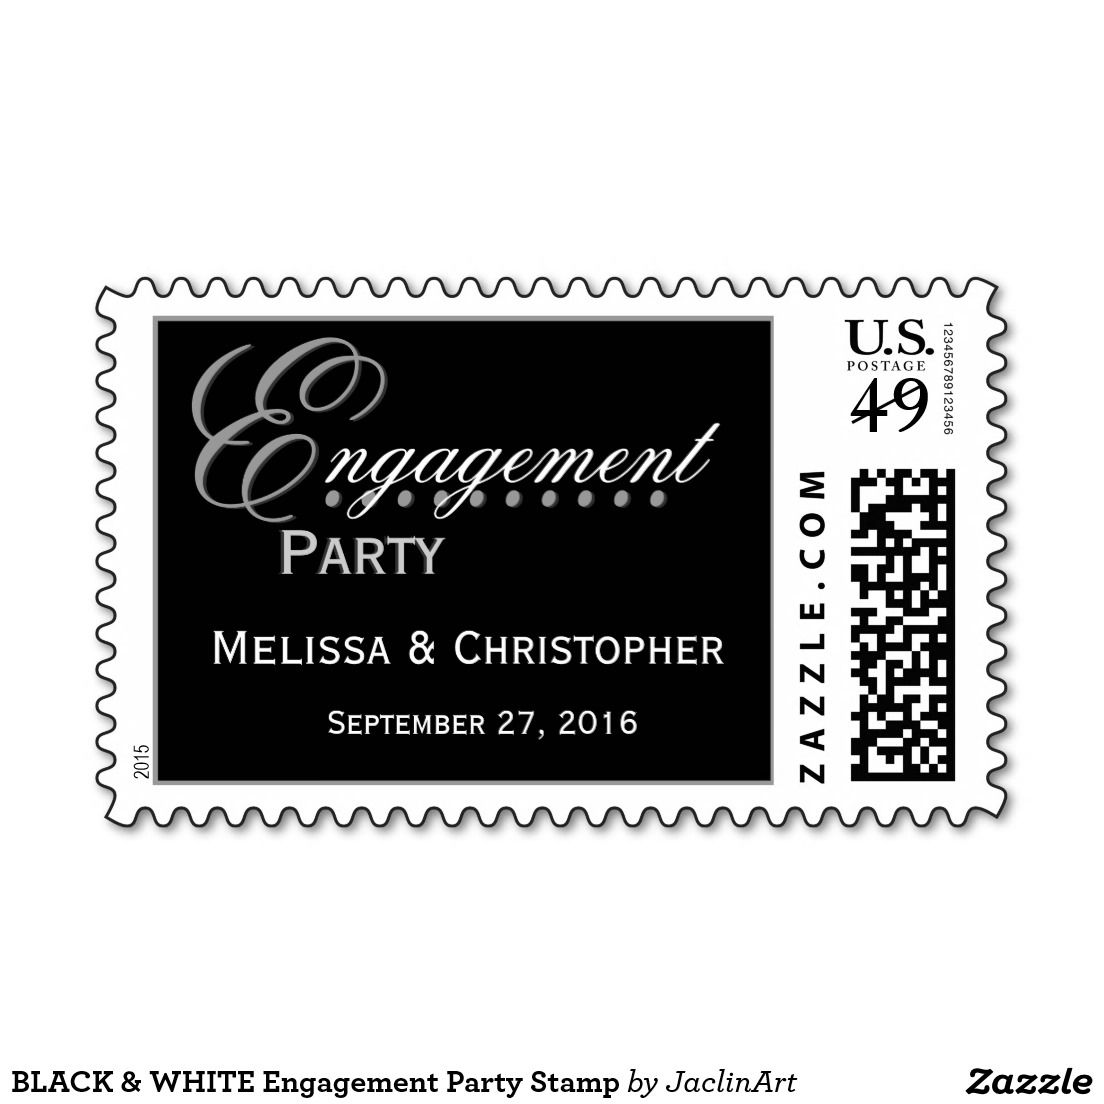 BLACK & WHITE Engagement Party Stamp   Zazzle com   STAMPS